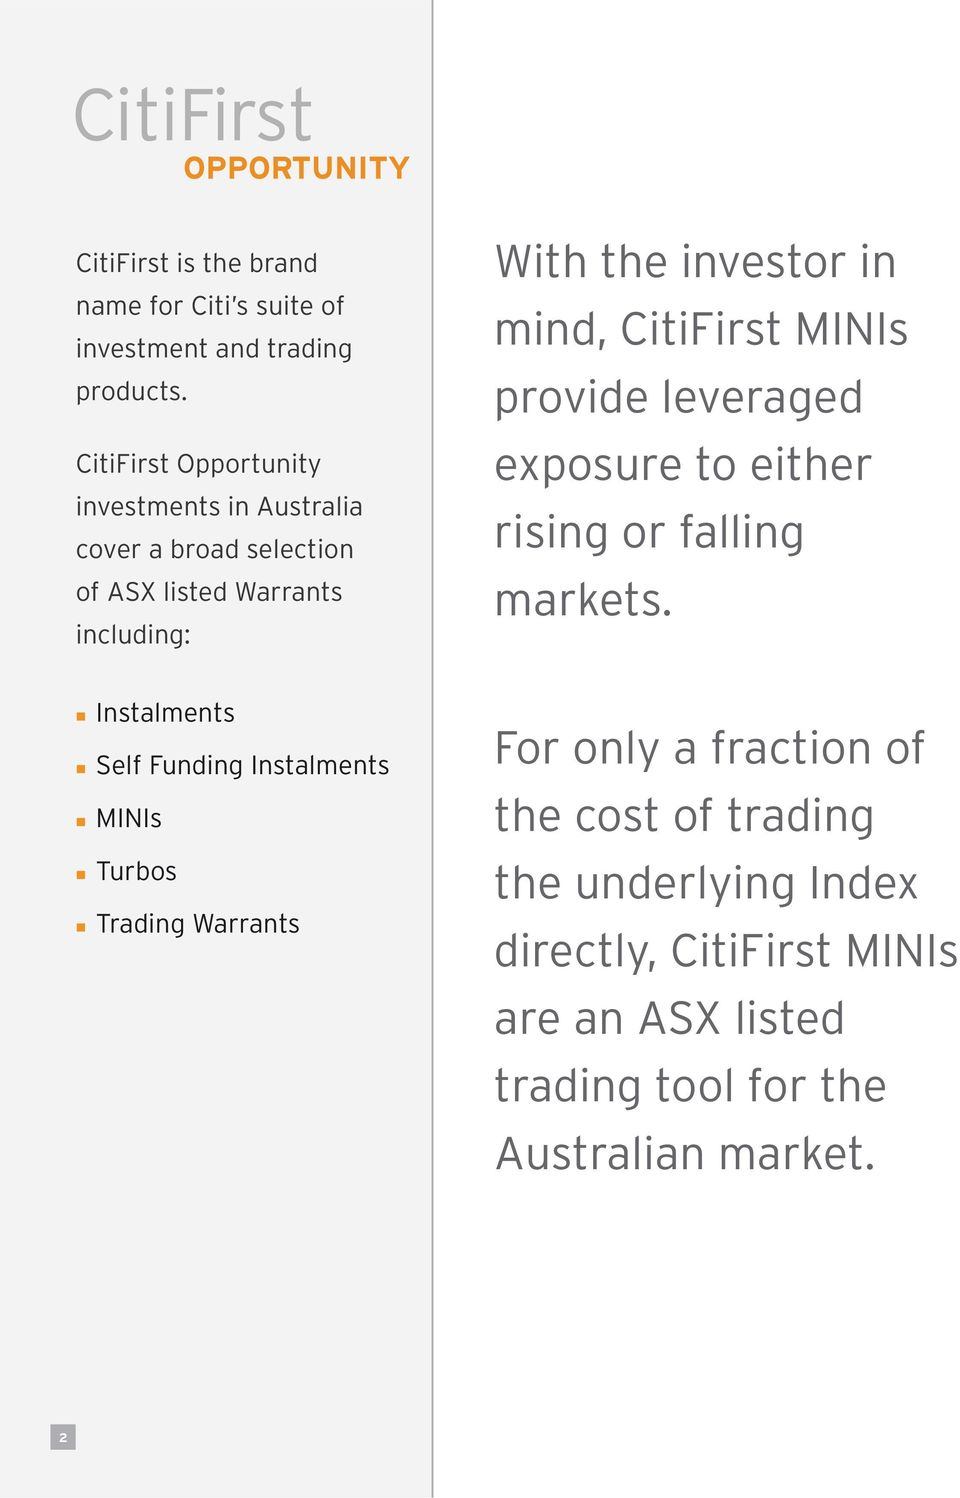 mind, CitiFirst MINIs provide leveraged exposure to either rising or falling markets.